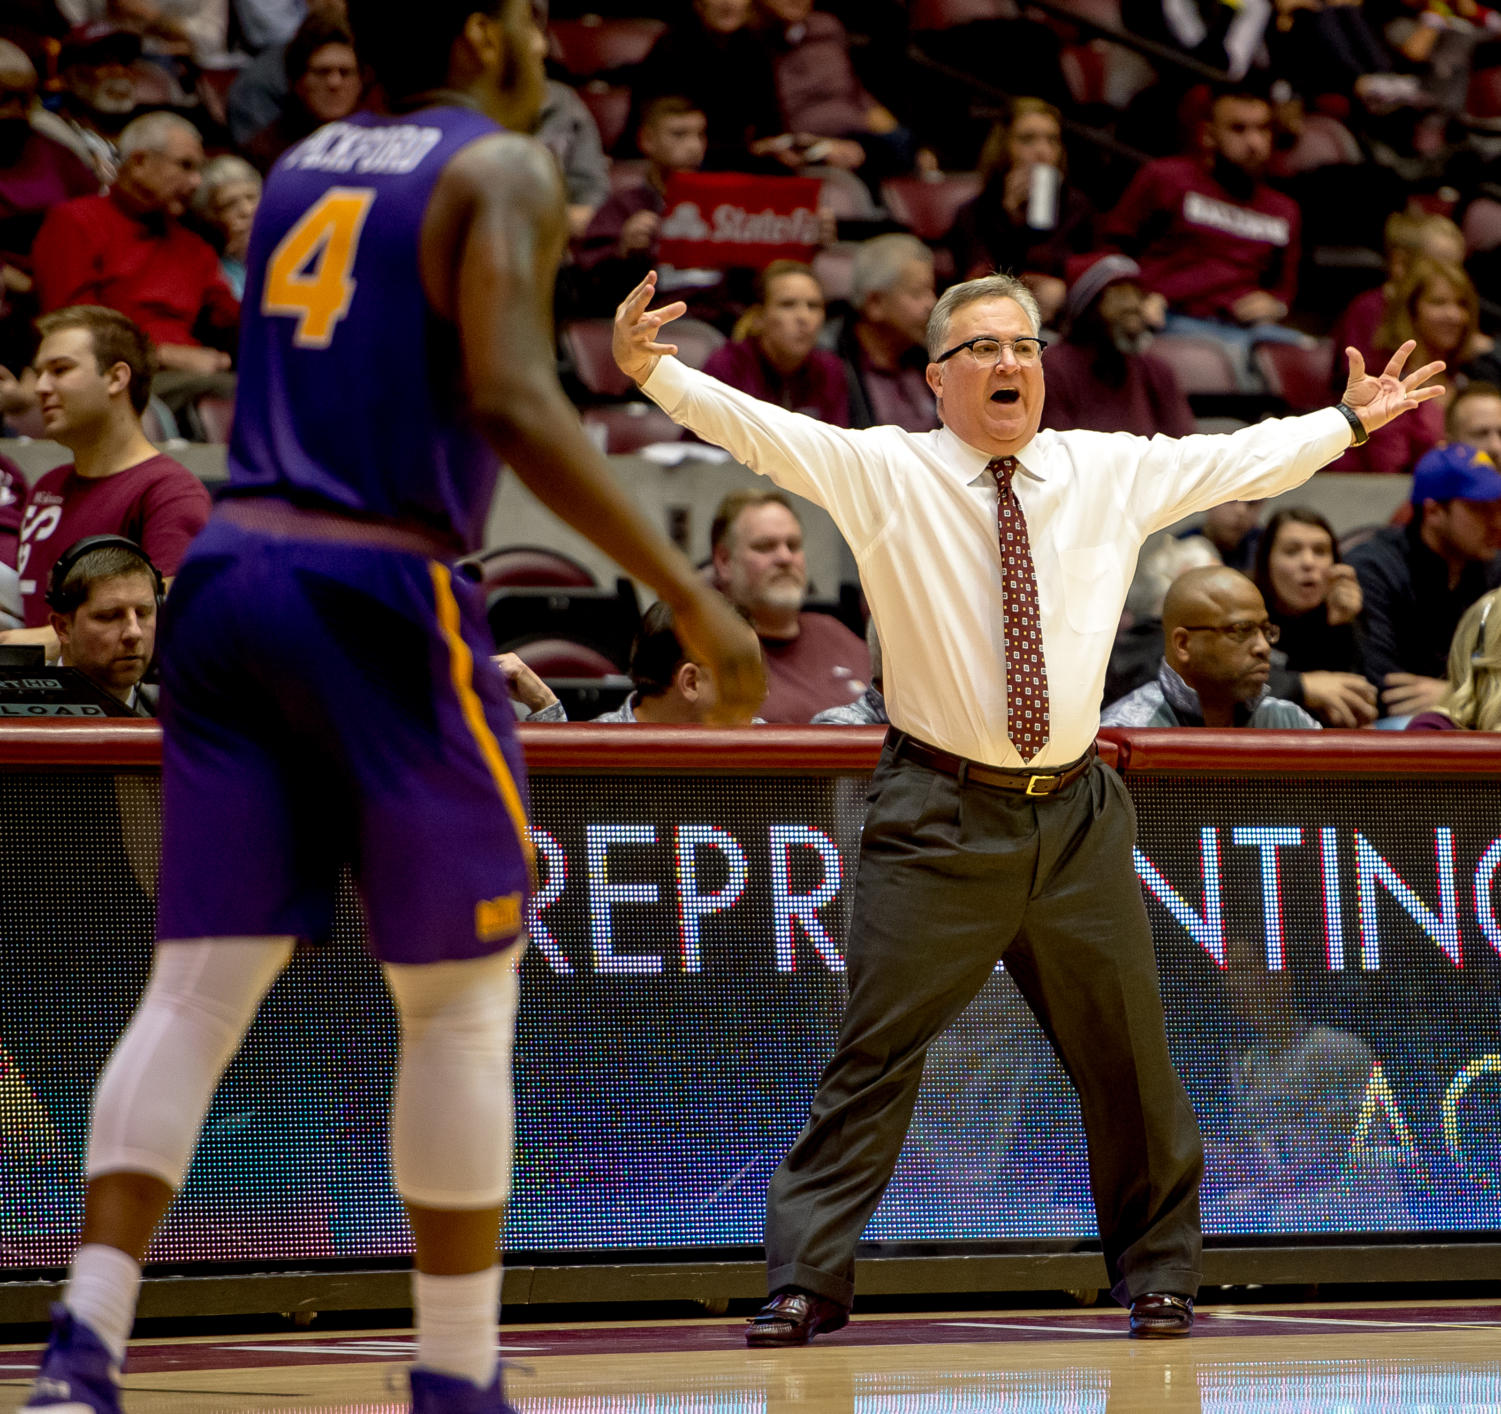 SIU+head+coach+Barry+Hinson+gestures+to+his+players+Sunday%2C+Jan.+21%2C+2018%2C+during+the+Salukis%27+64-53+victory+over+the+University+of+Northern+Iowa+Panthers+at+SIU+Arena.+%28Brian+Munoz+%7C+%40BrianMMunoz%29